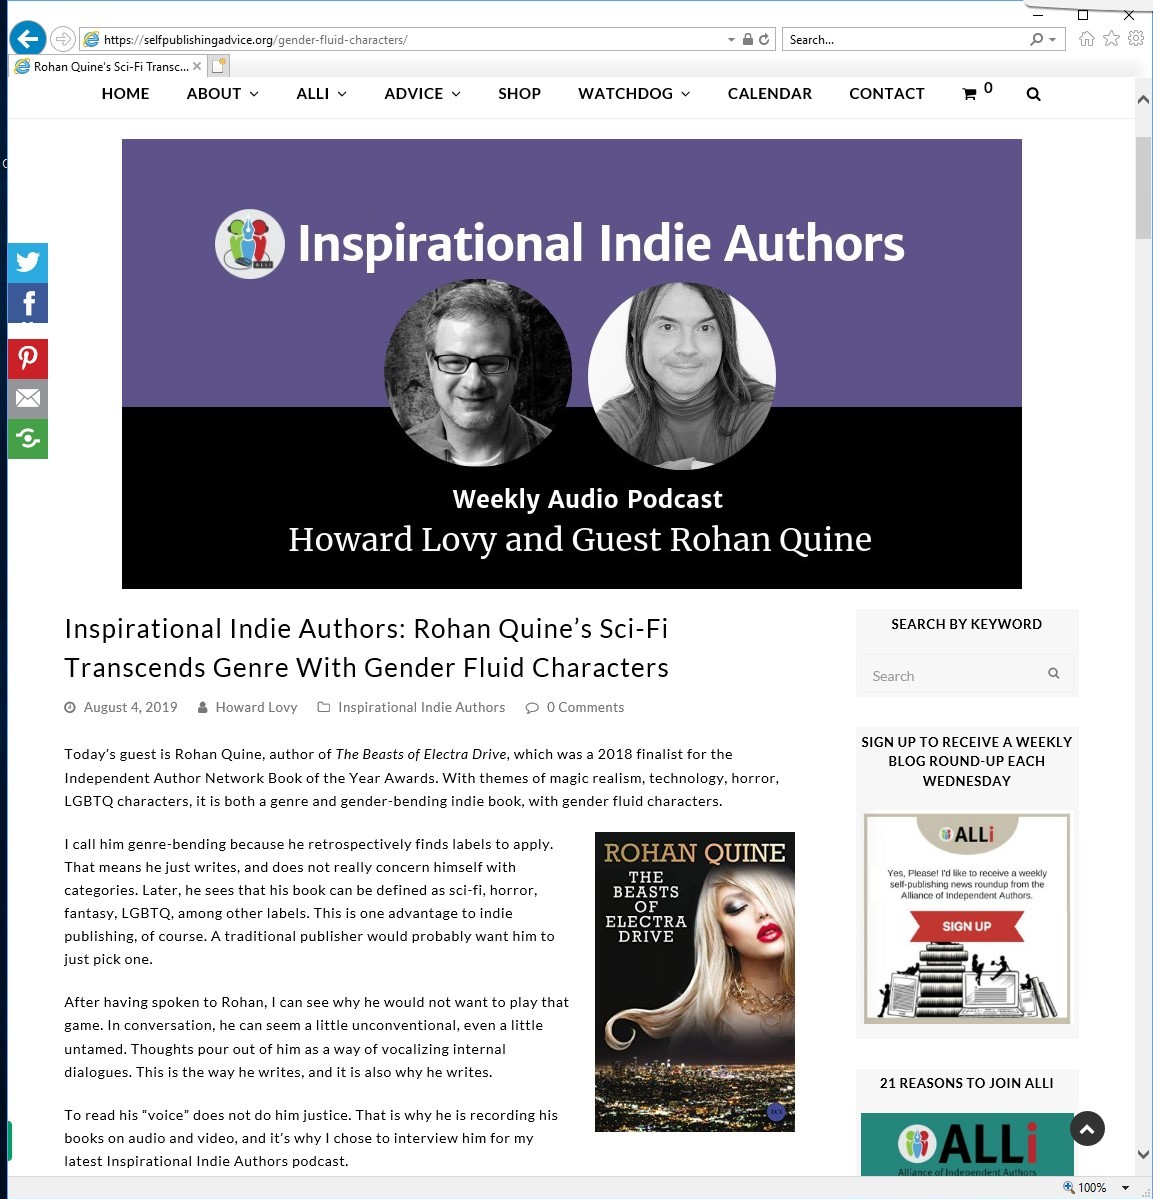 Rohan Quine on Howard Lovy's 'Inspirational Indie Authors' podcast - 1